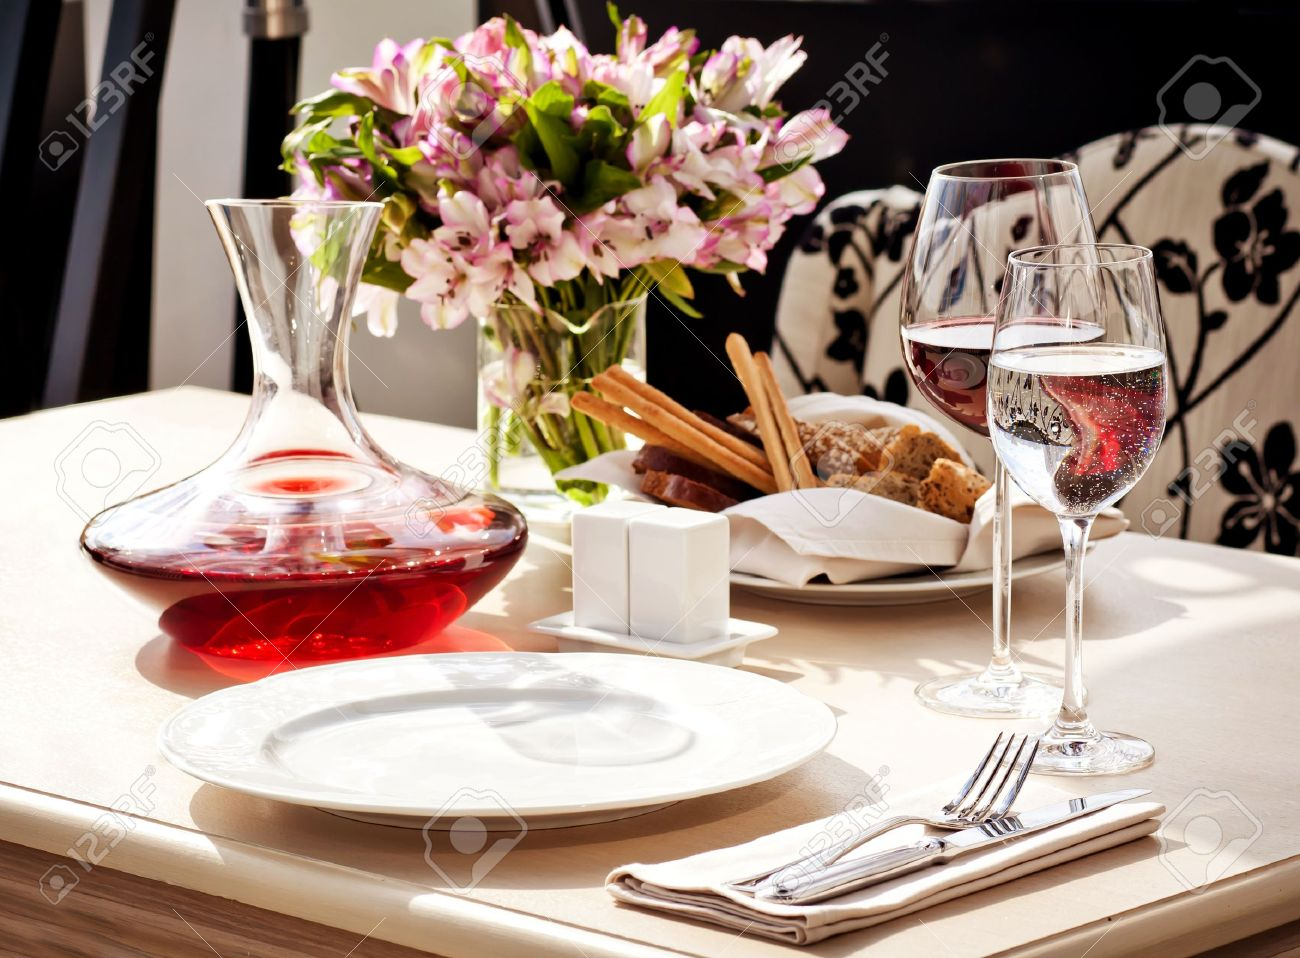 Fancy restaurant table setting - Fine Restaurant Dinner Table Place Setting Stock Photo 11708665